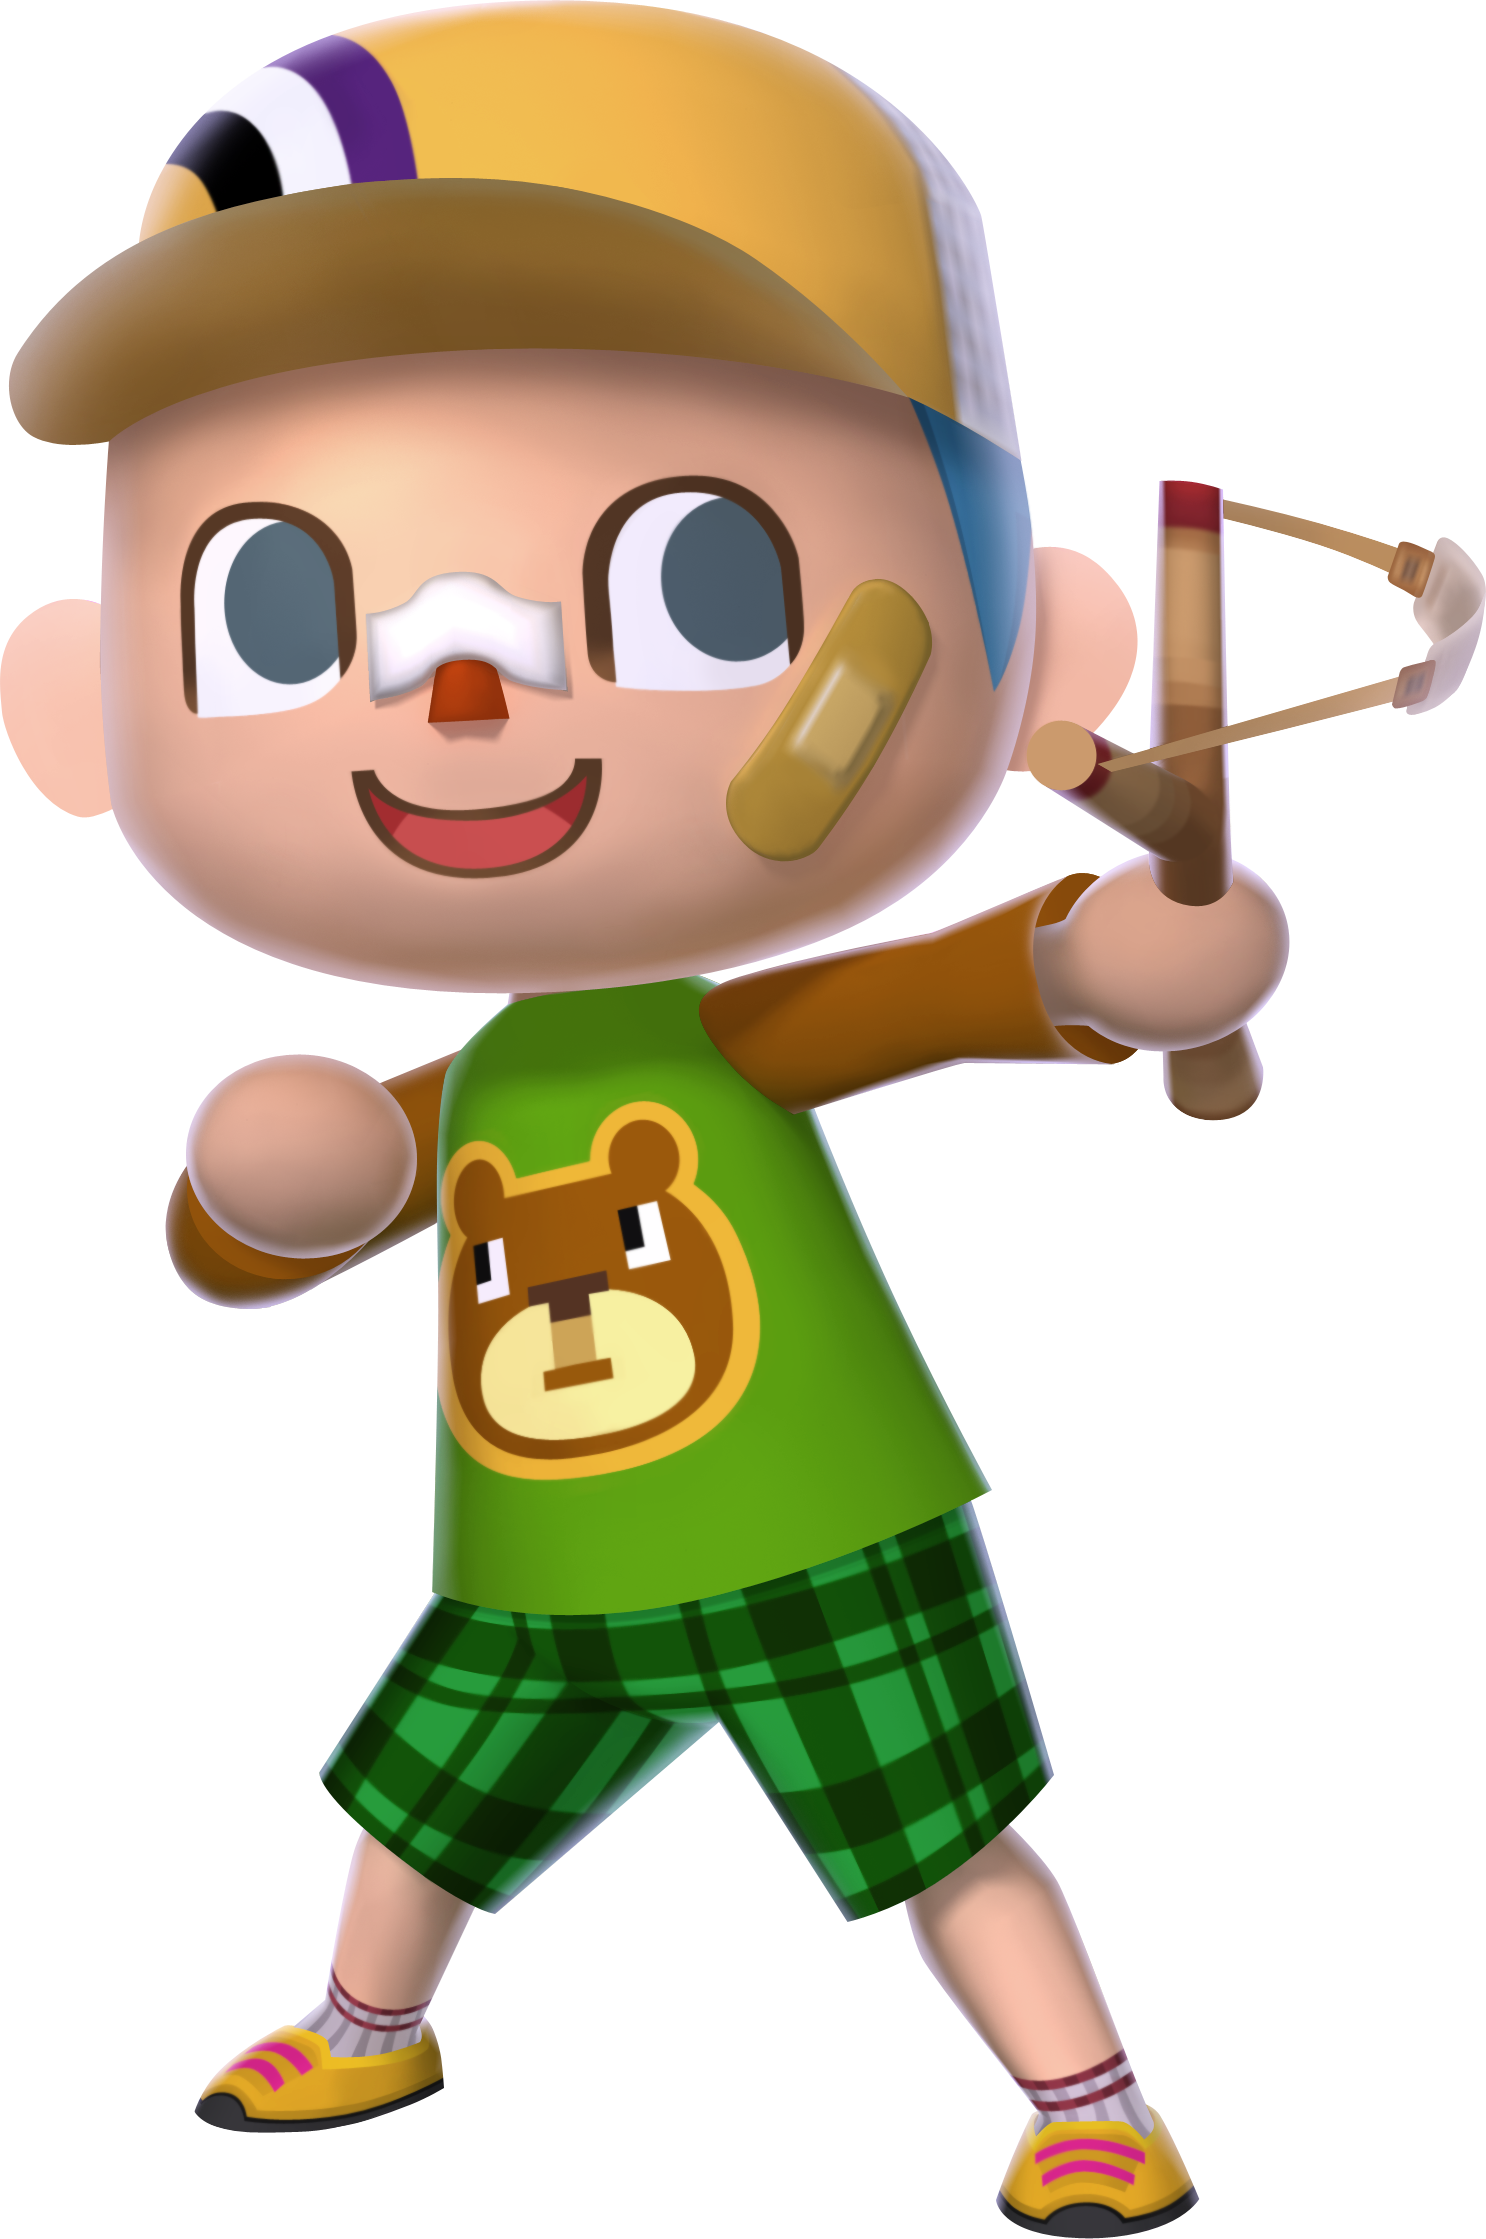 Animal crossing villager png. Image boy nintendo fandom